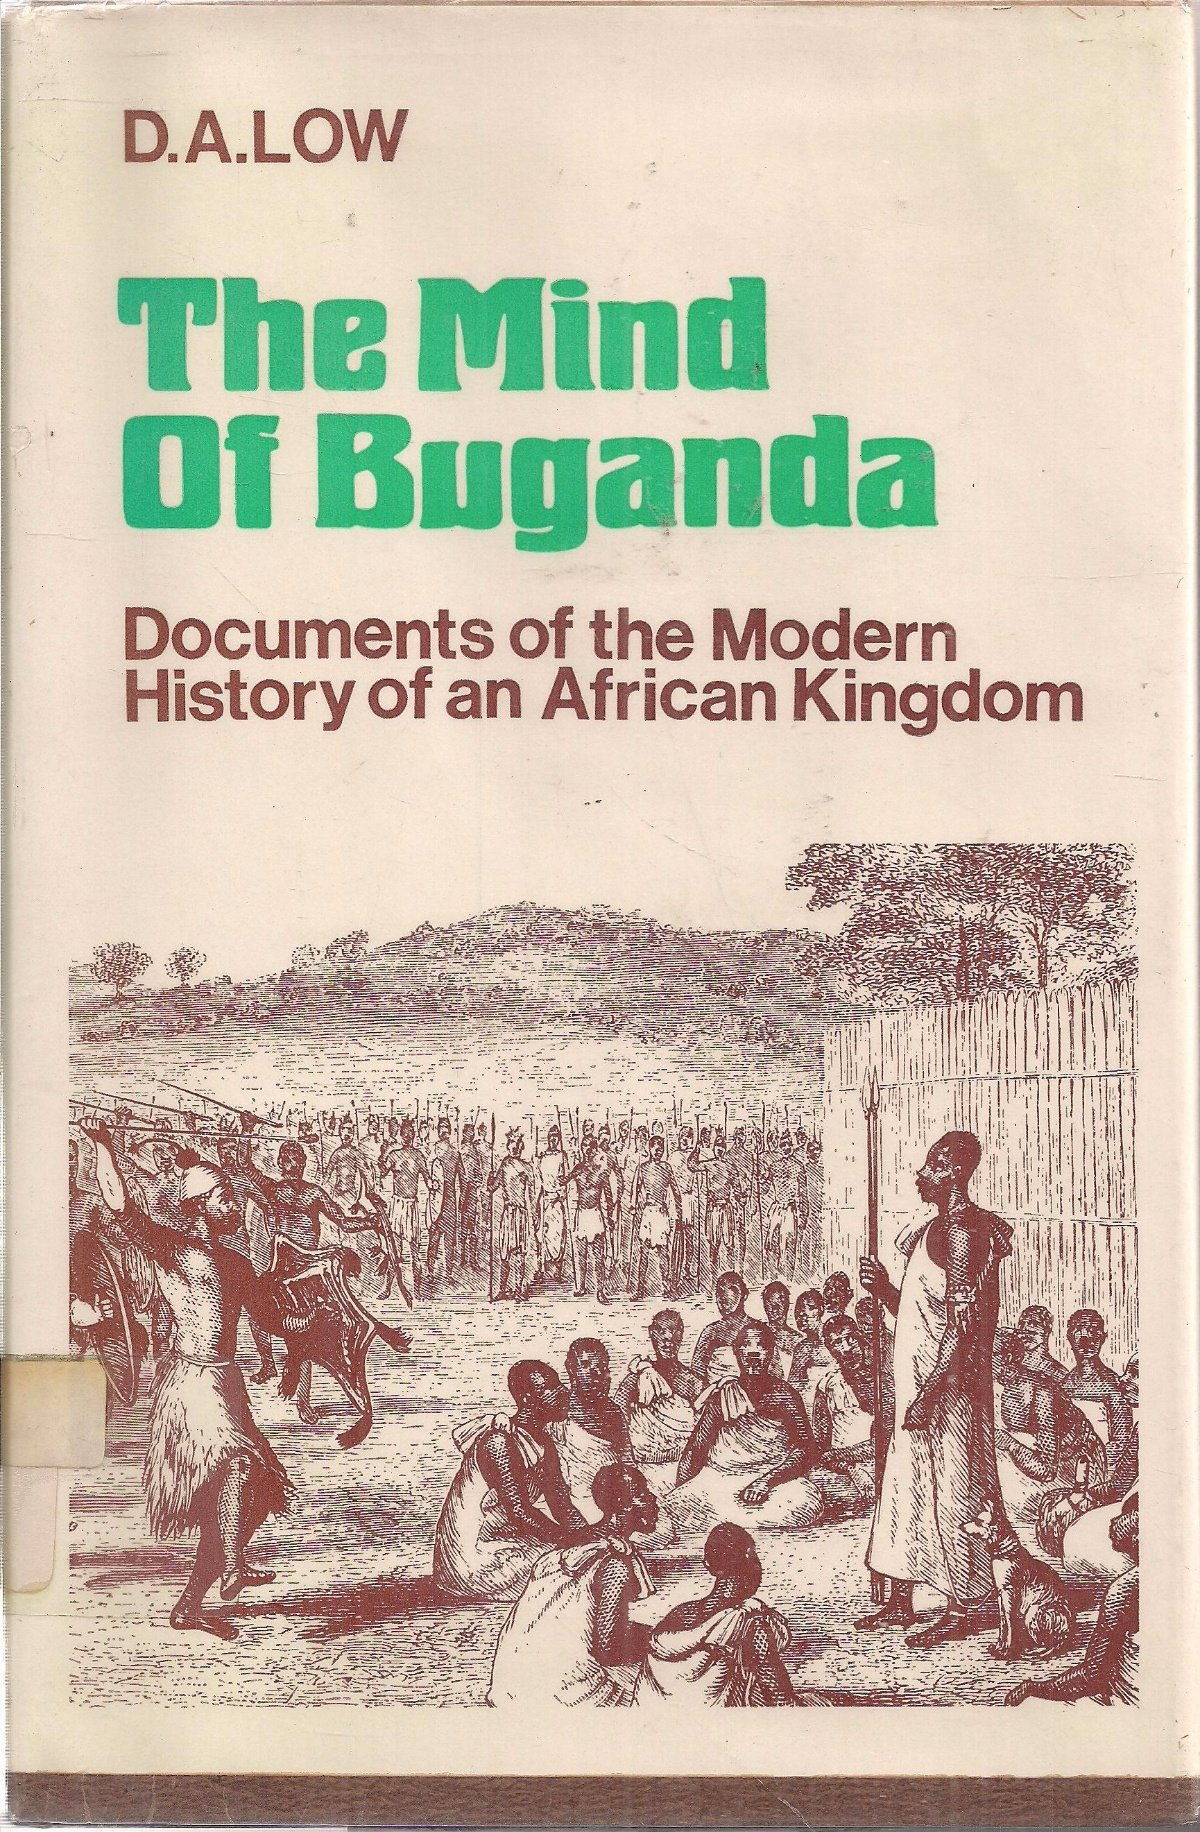 The mind of Buganda;: Documents of the modern history of an African kingdom